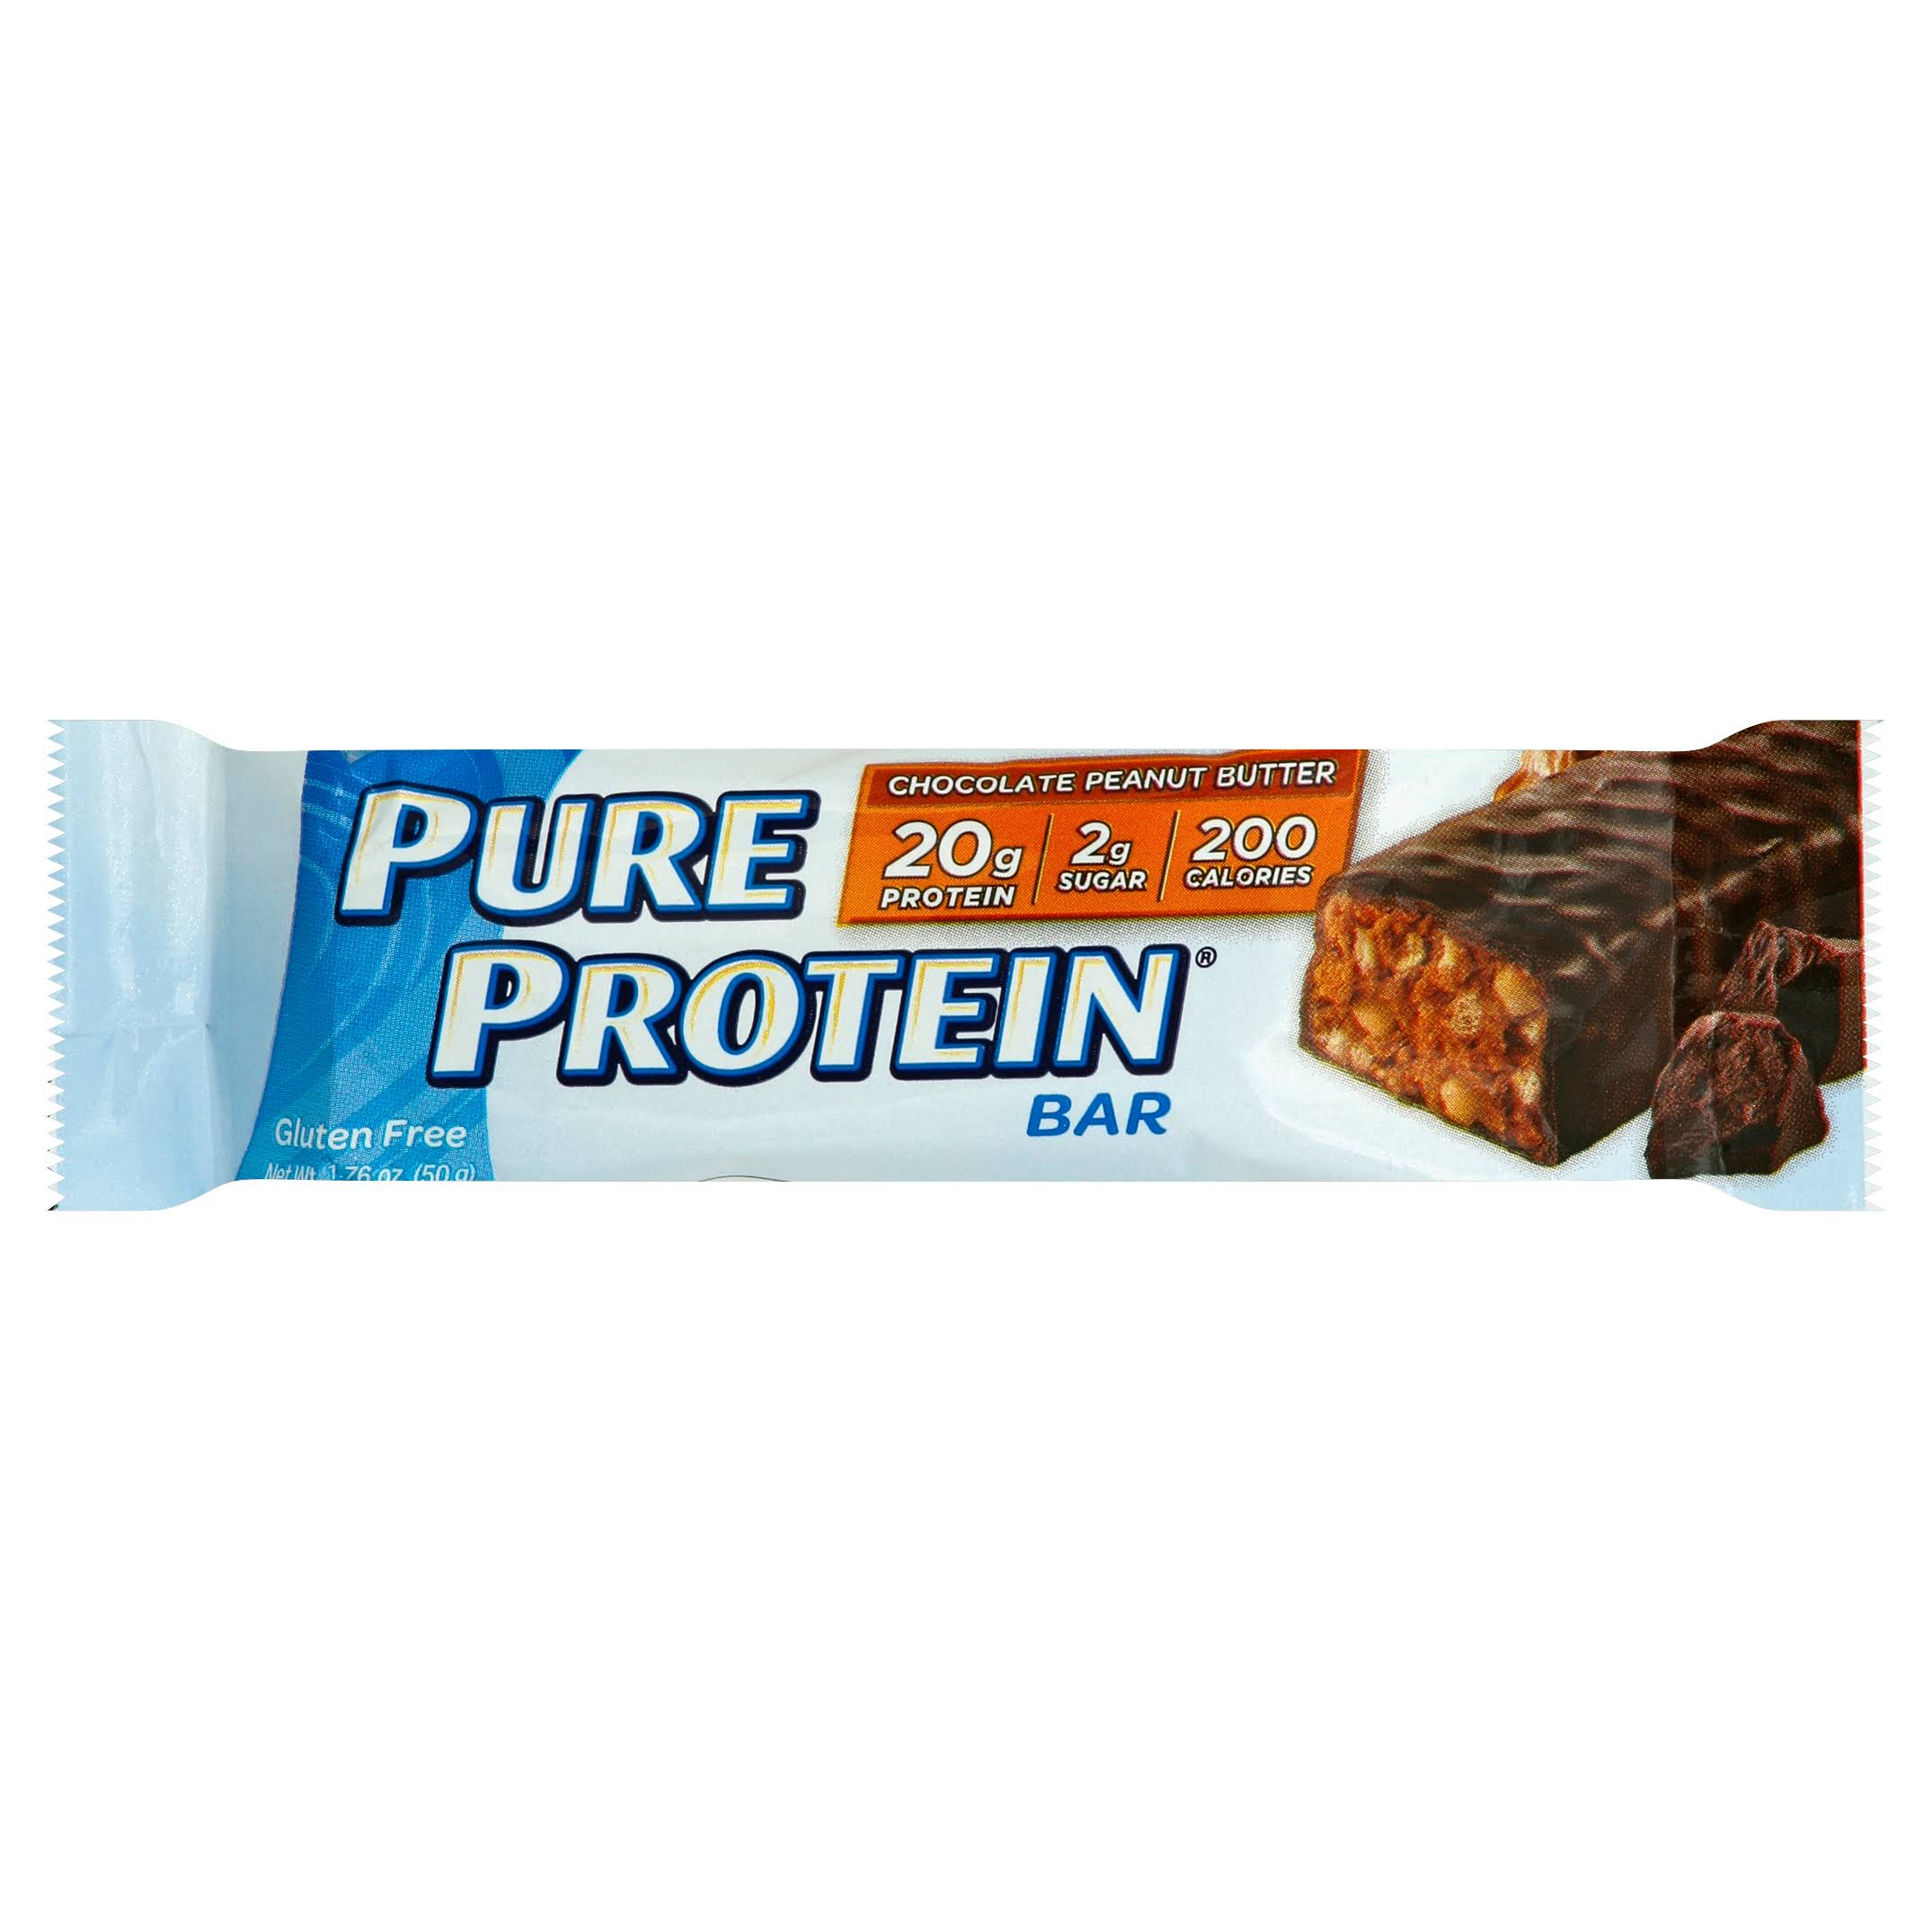 Pure Protein Bar - Chocolate Peanut Butter